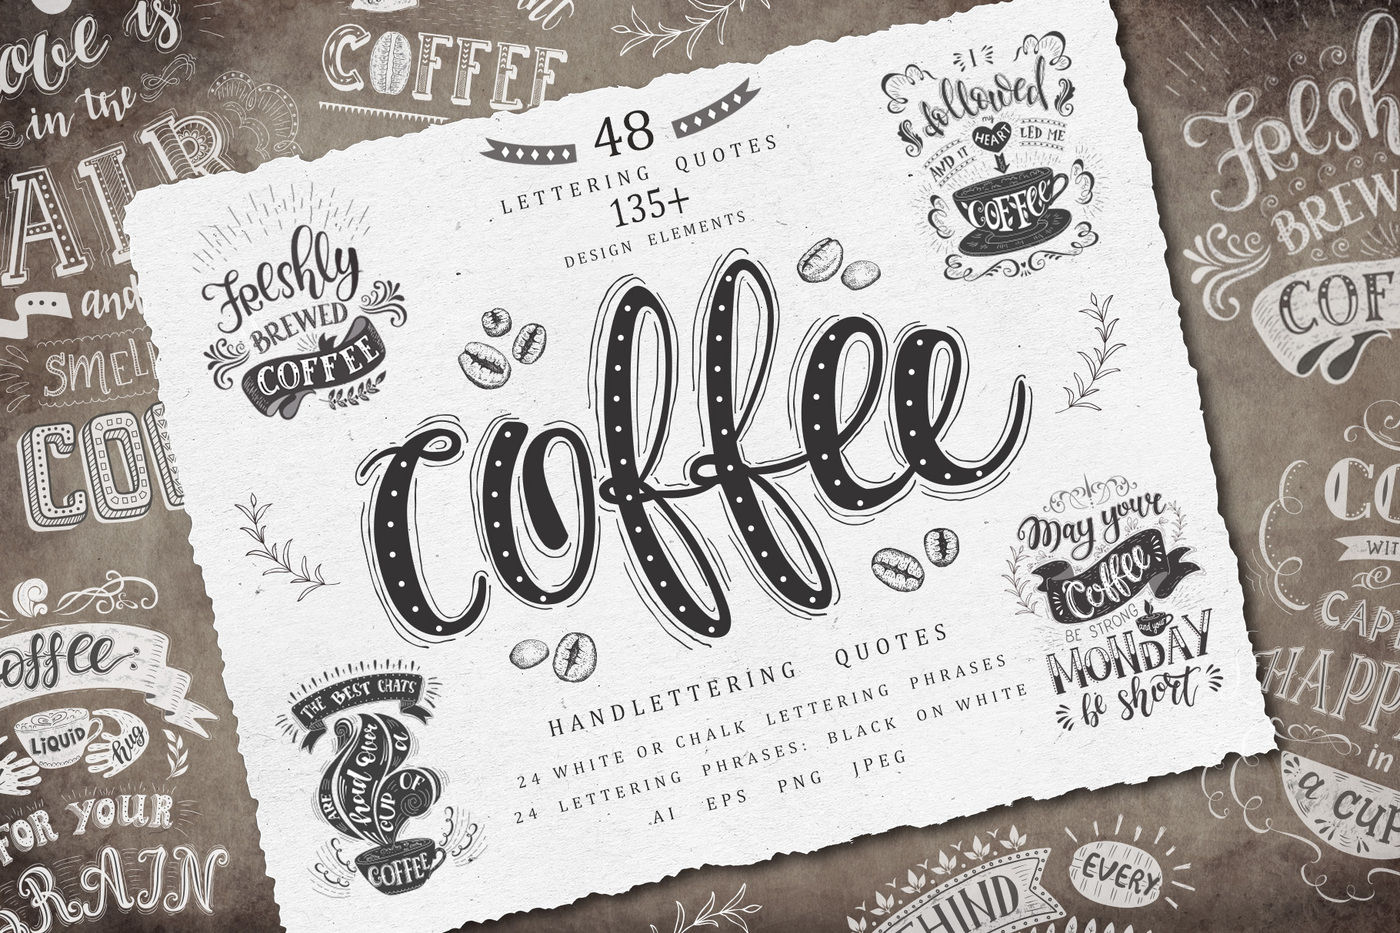 Coffee Handlettering Quotes By Designwork Thehungryjpeg Com